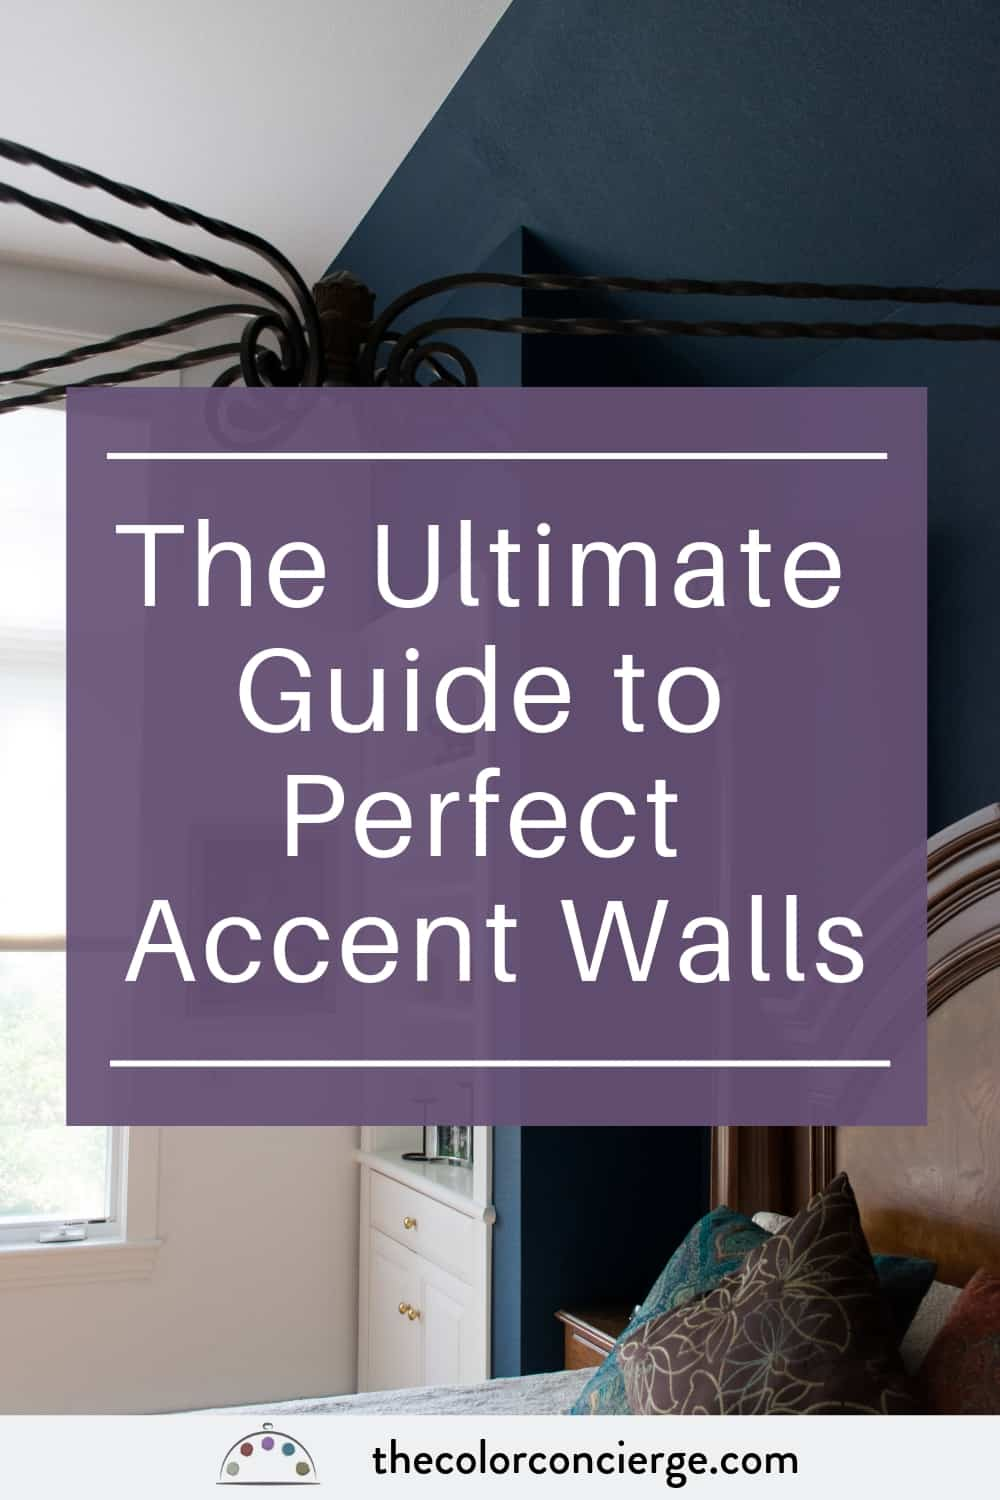 Ultimate Guide to Perfect Accent Walls